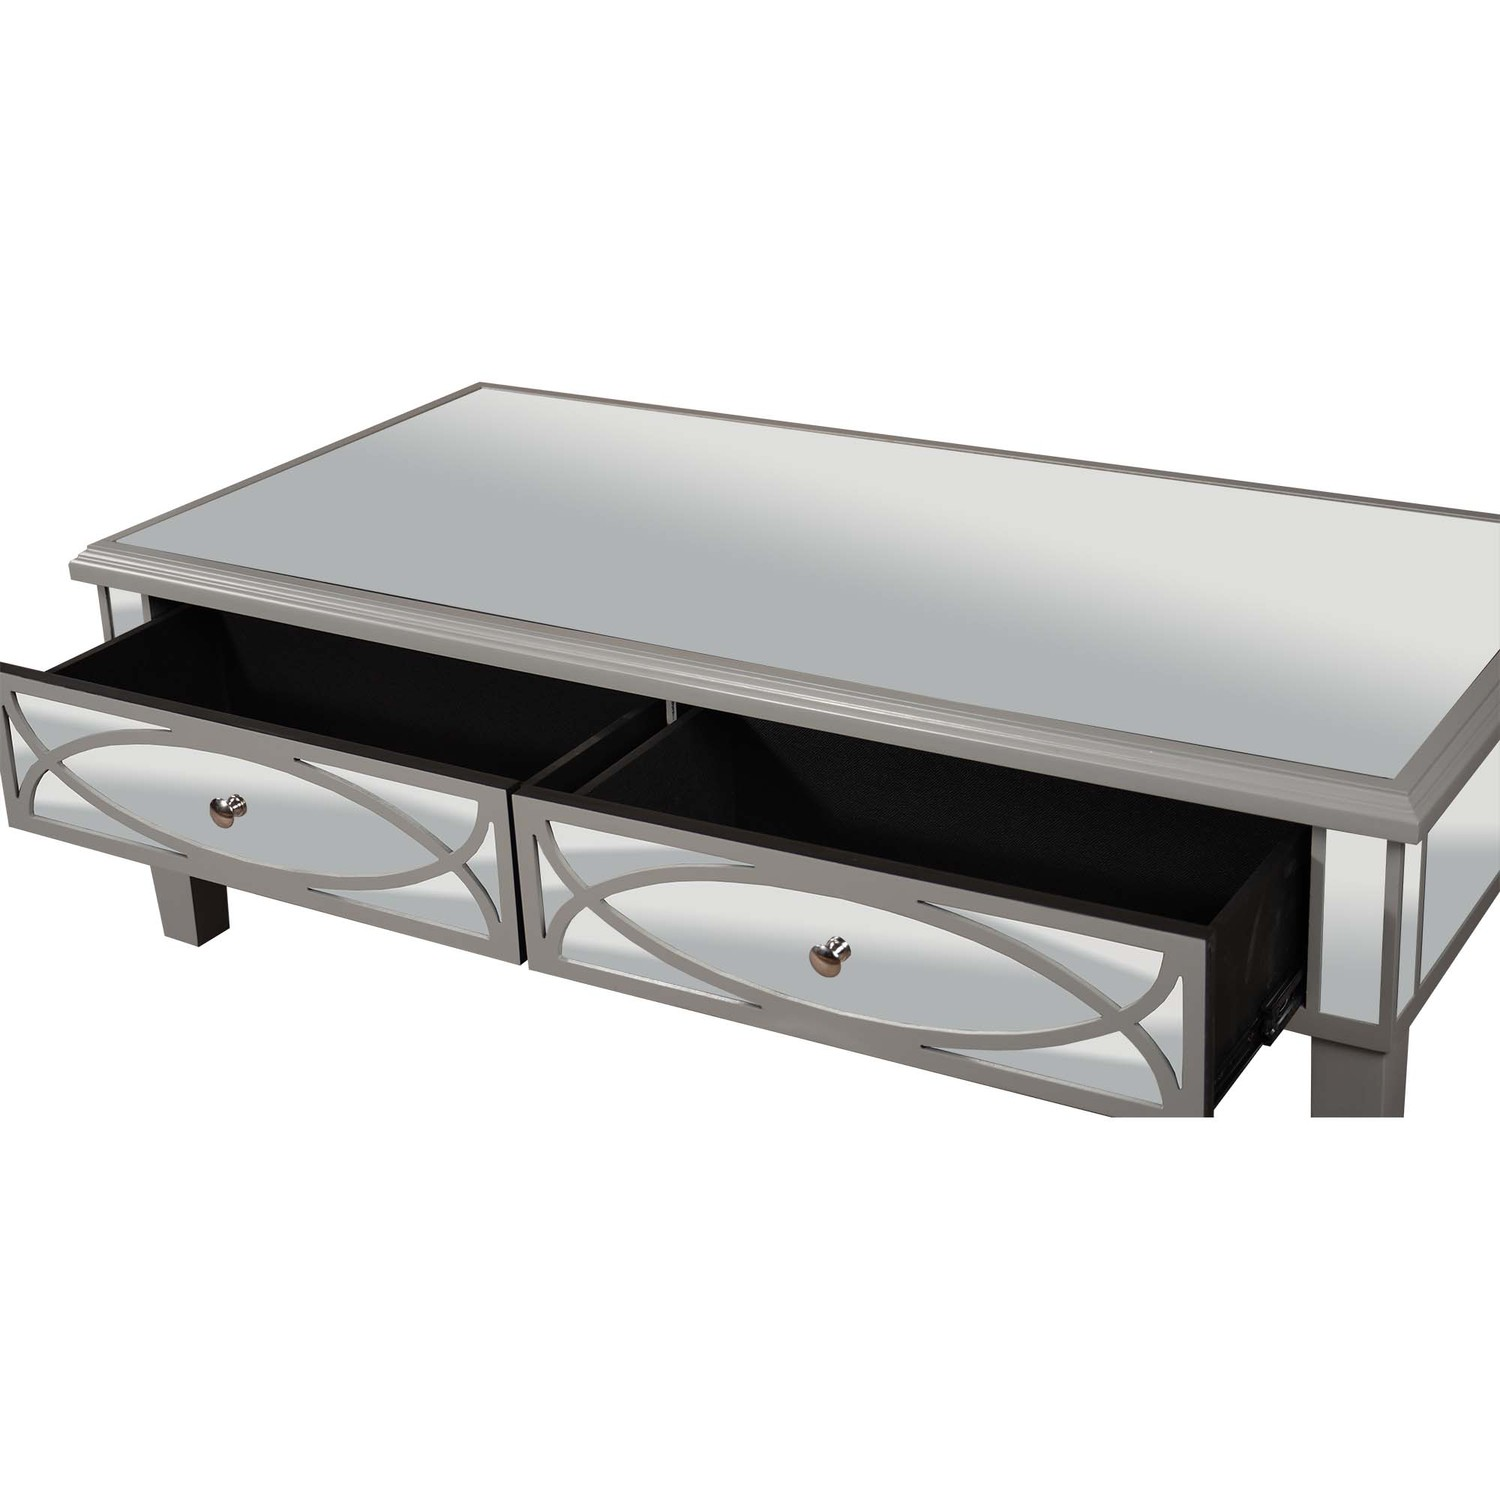 Paloma Collection Mirrored Coffee Table - Image 2